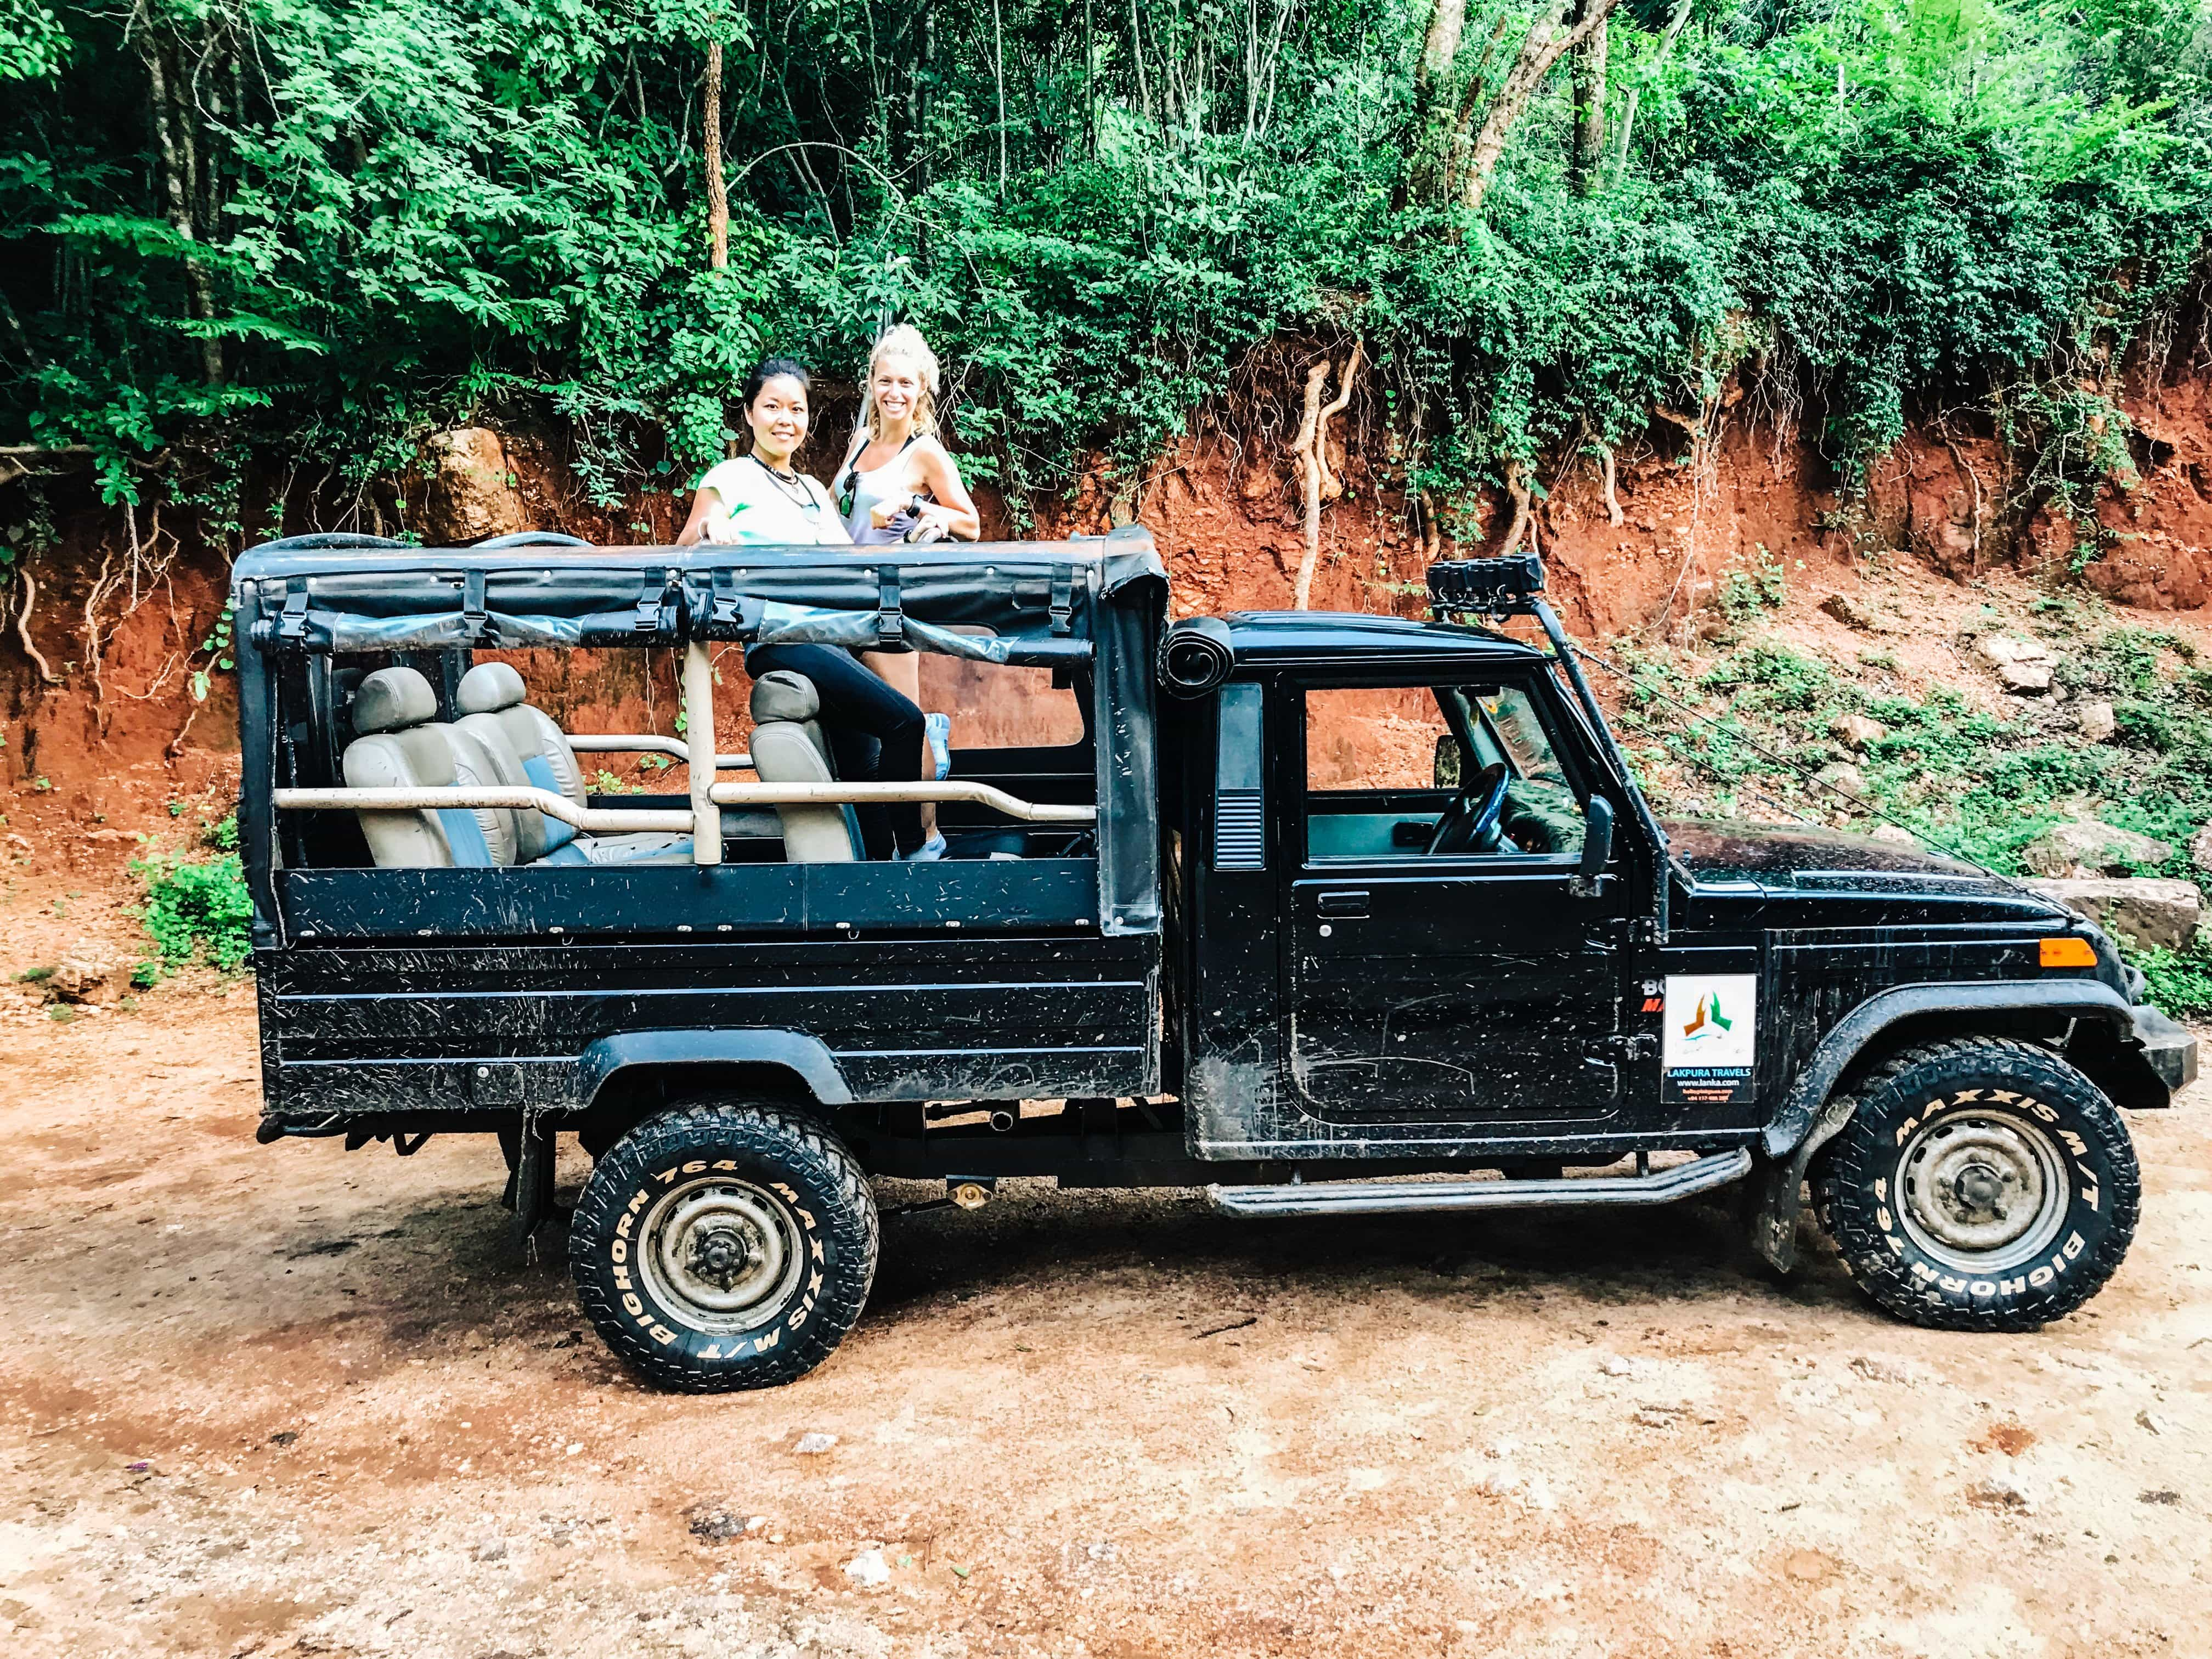 Have you ever seen photos of those awesome people on Instagram who seem to be driving through the wilderness with the roofs off their jeeps to get an even closer look at the wildlife? Well, I finally got to be one of those people in Kaudulla National Park, Sri Lanka thanks to Lakpura Travels! Read more at www.thefivefoottraveler.com